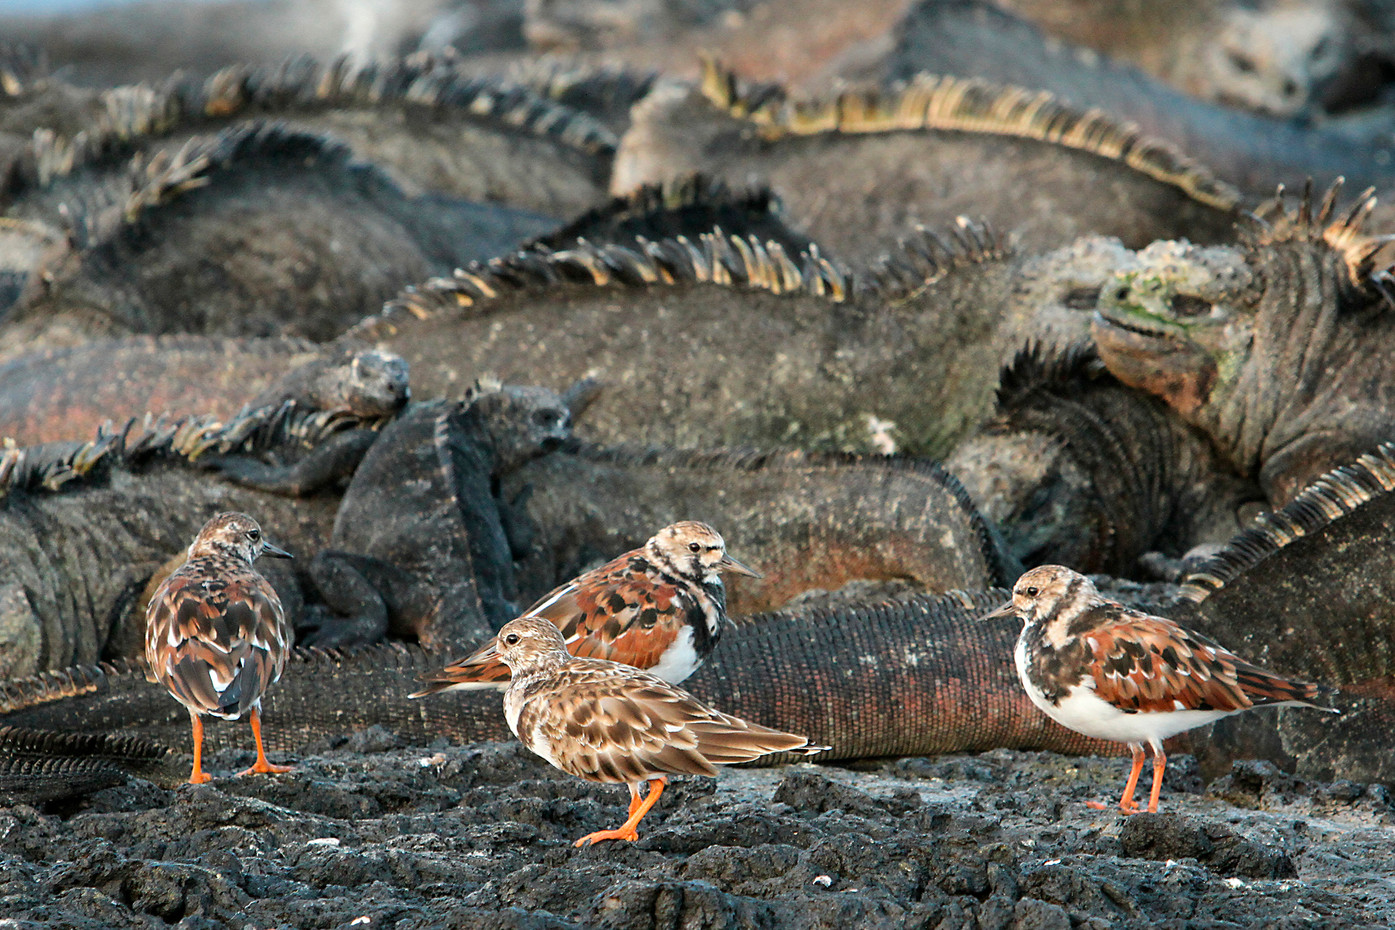 Ruddy Turnstones & Marine Iguanas in the Galapagos Islands, Equador